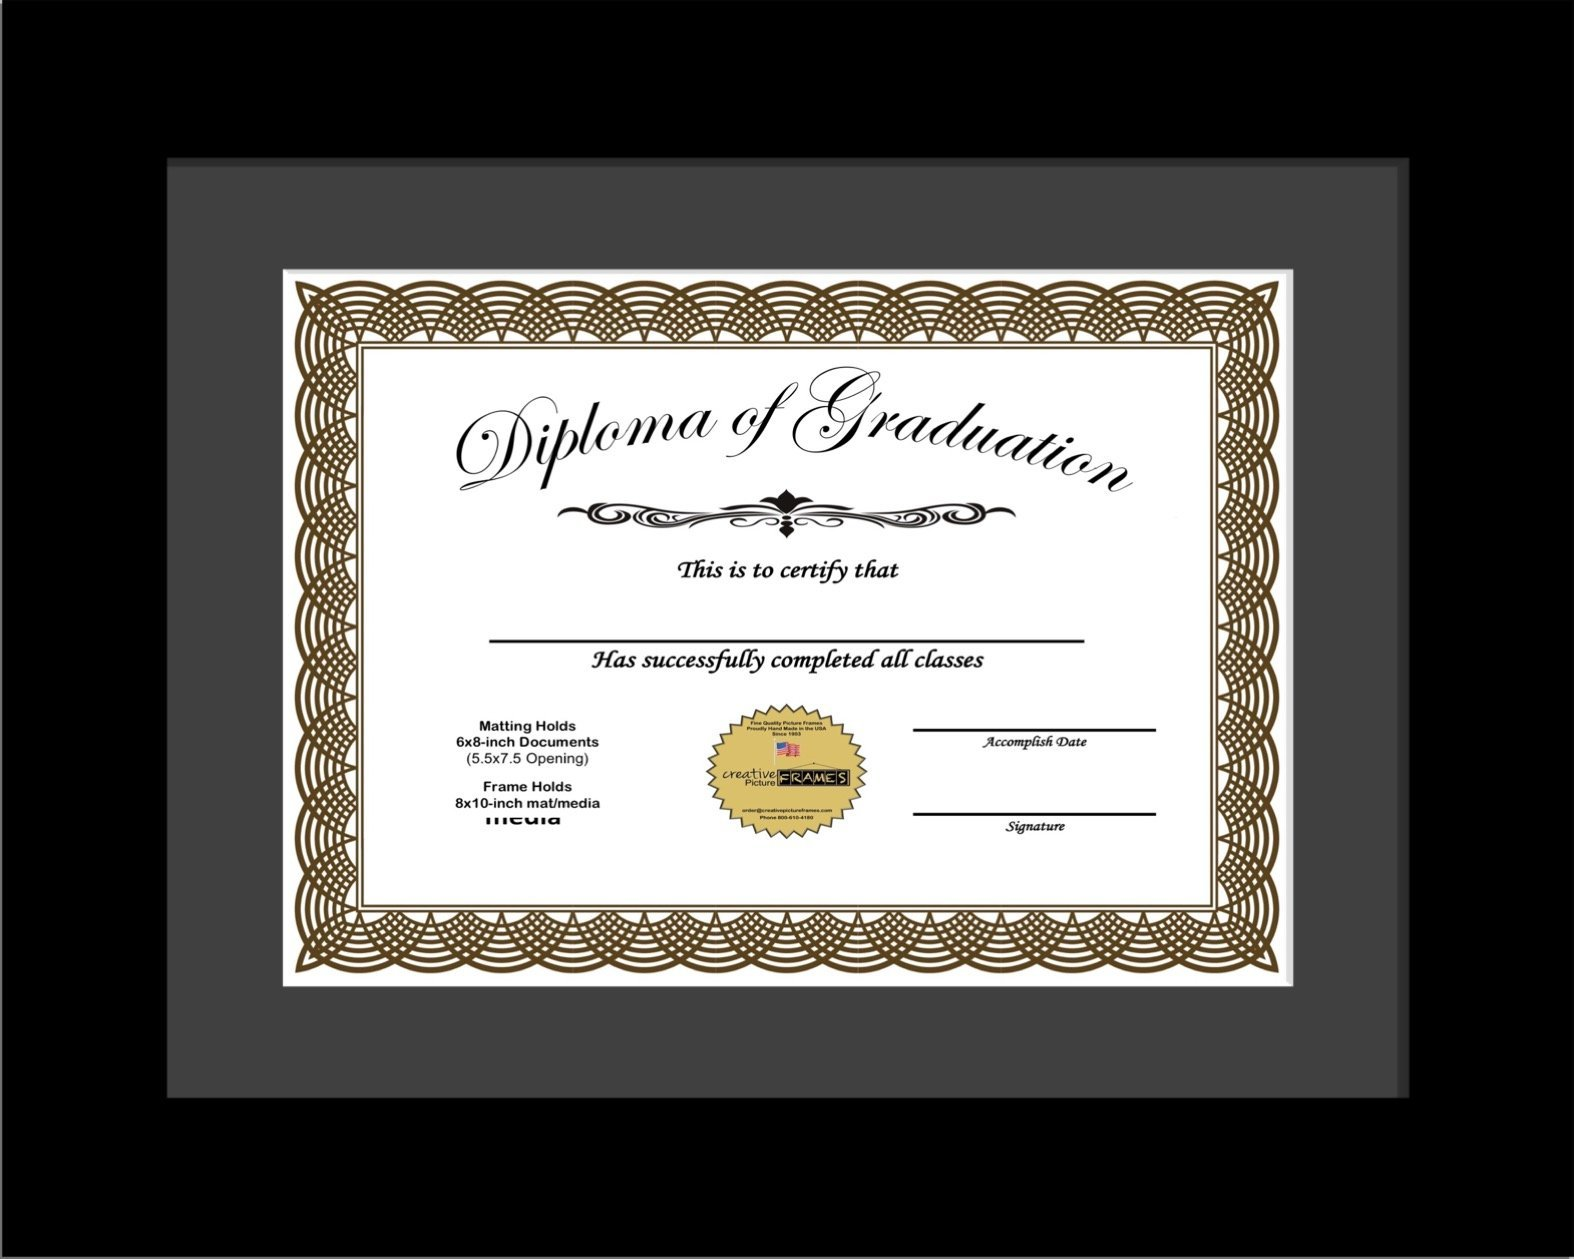 CreativePF [6x8-1-8x10bk-b] Black Diploma Frame with Black Matting   Holds 6x8-inch Documents with Stand and Wall Hanger